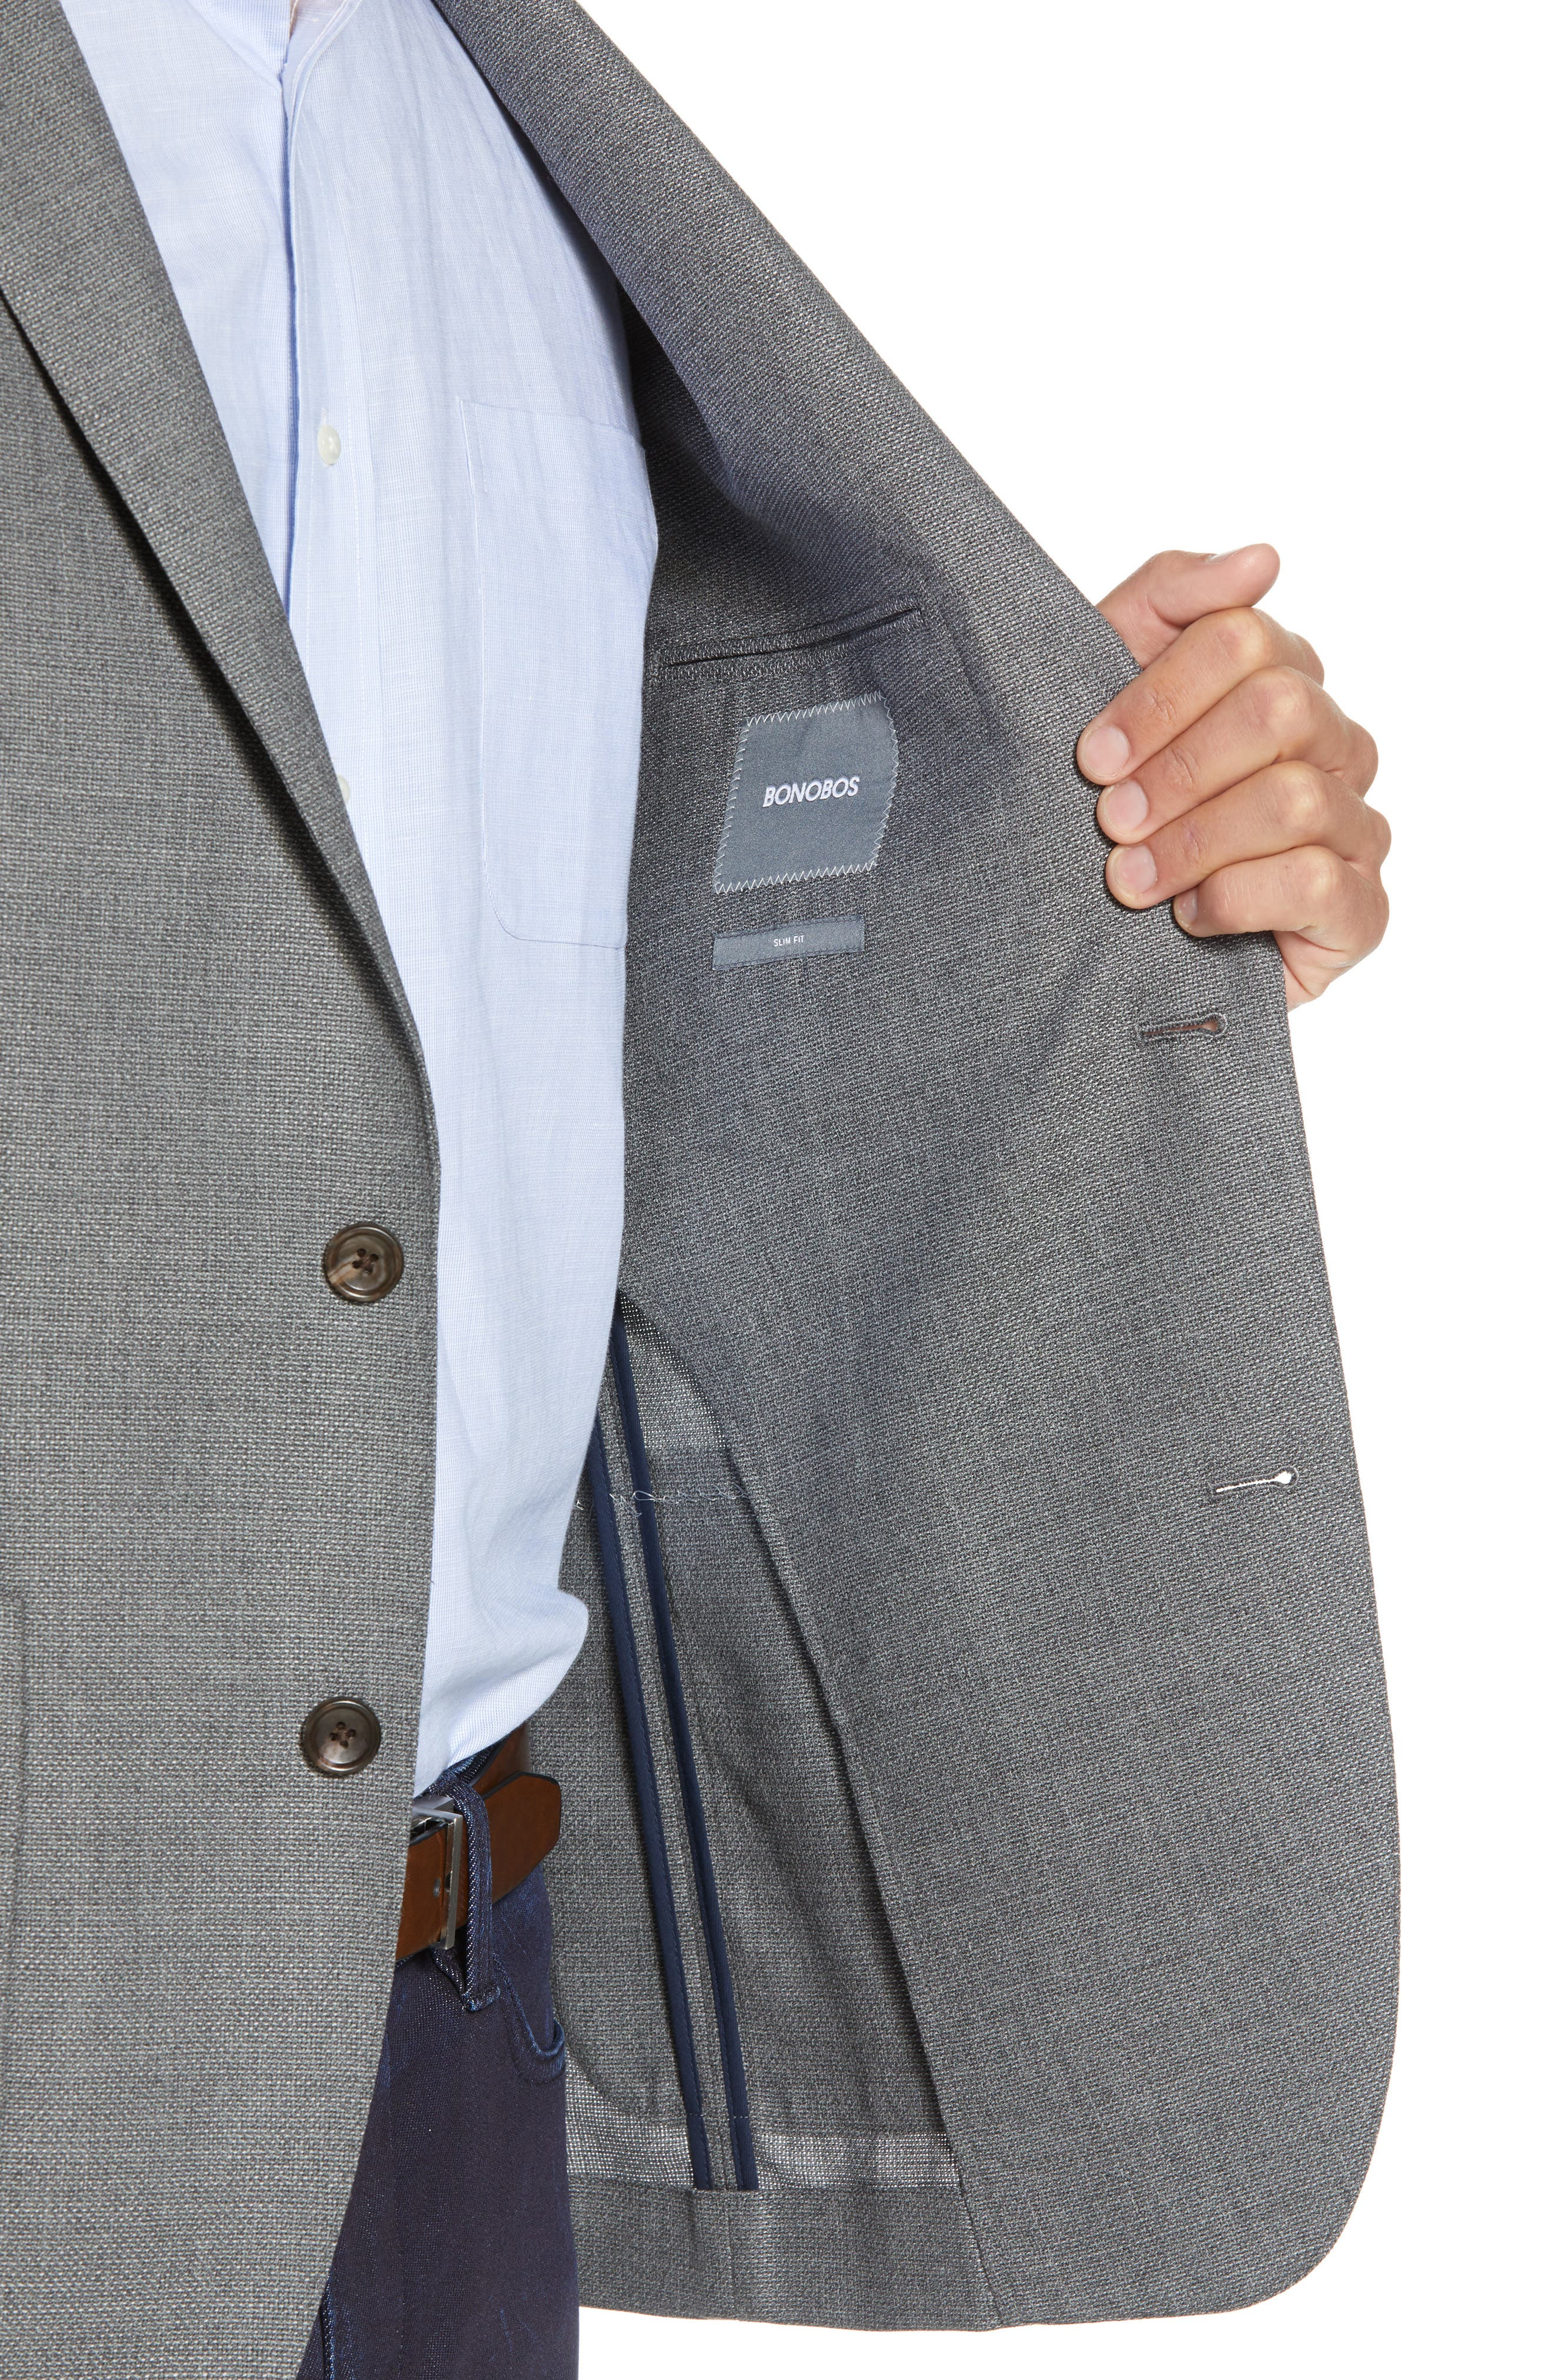 Trim Fit Wool Blazer,                             Alternate thumbnail 4, color,                             MID GREY